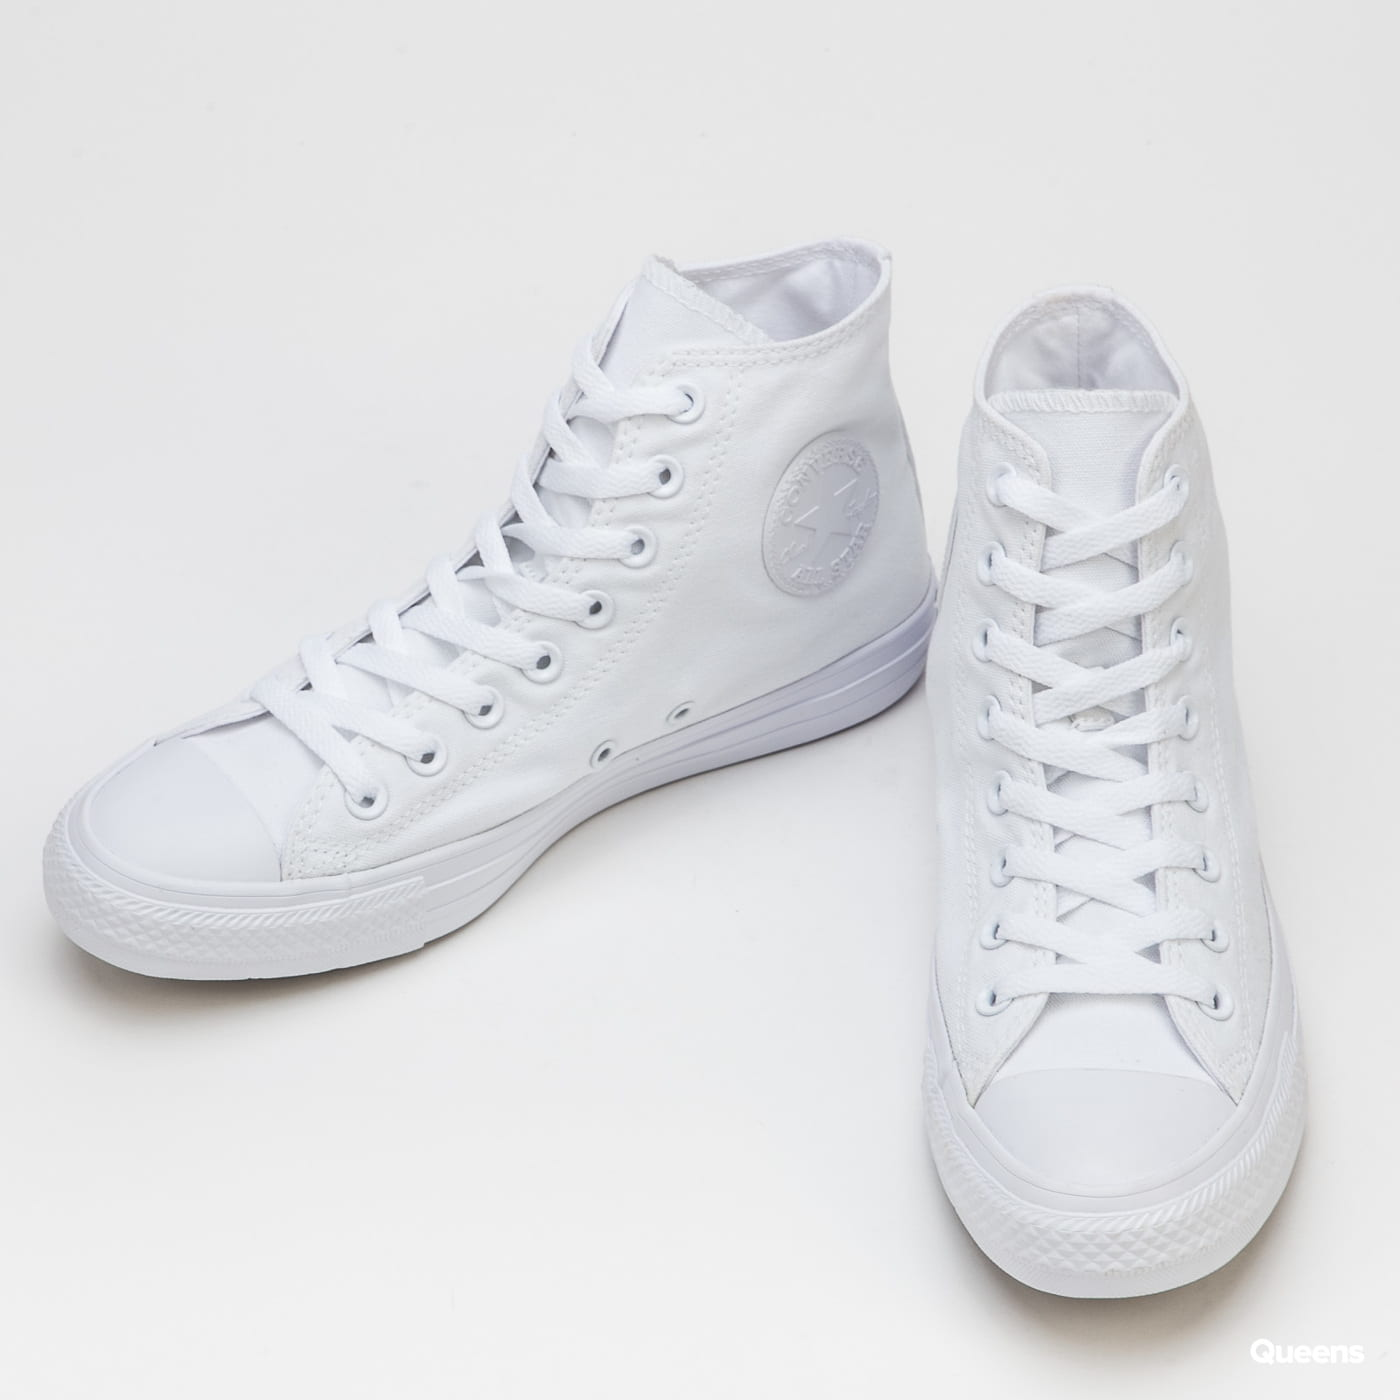 Converse Chuck Taylor All Star Seasonal white mohoch